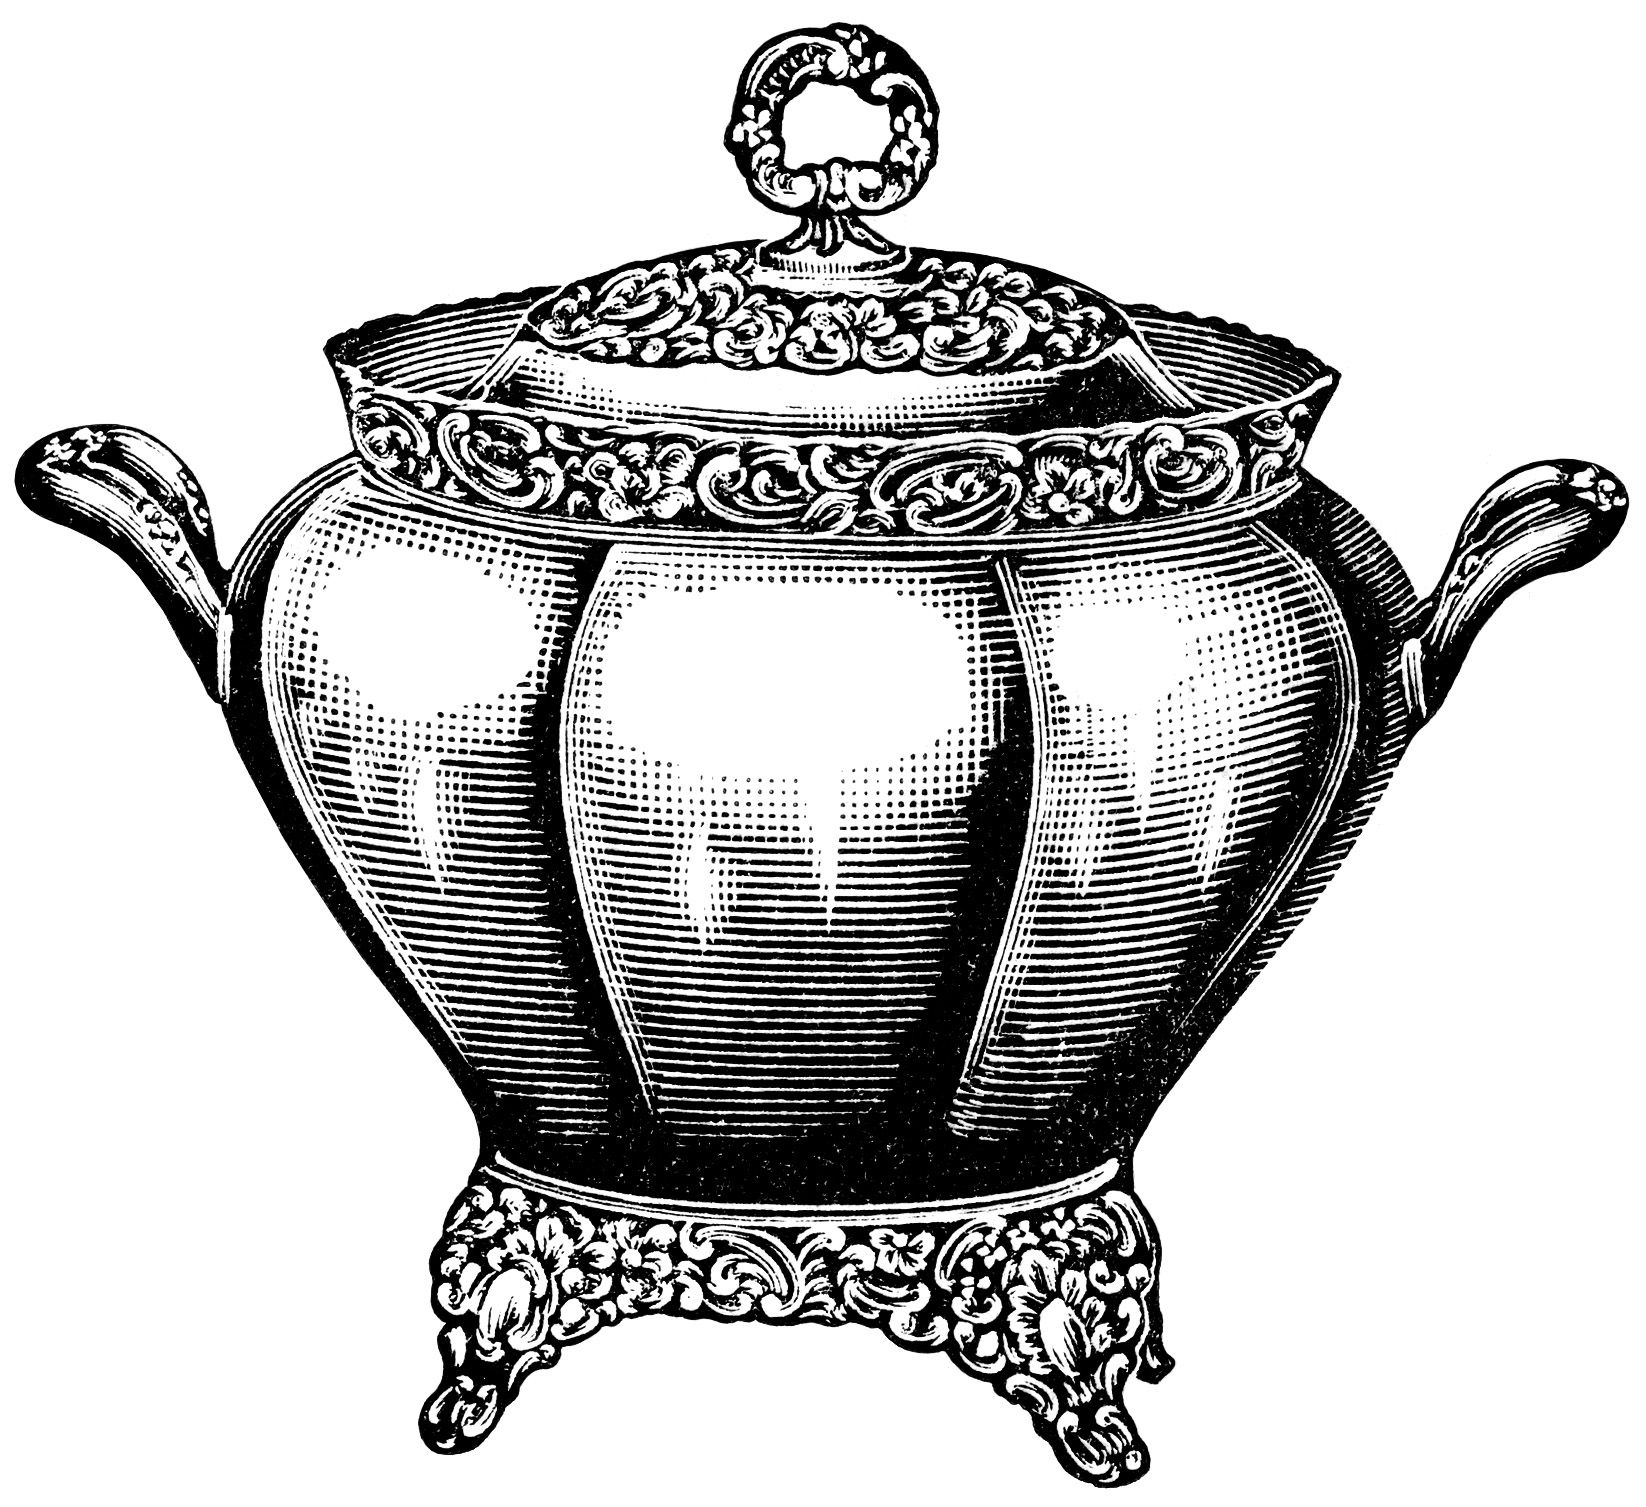 Soup clipart soup tureen. Black and white graphics